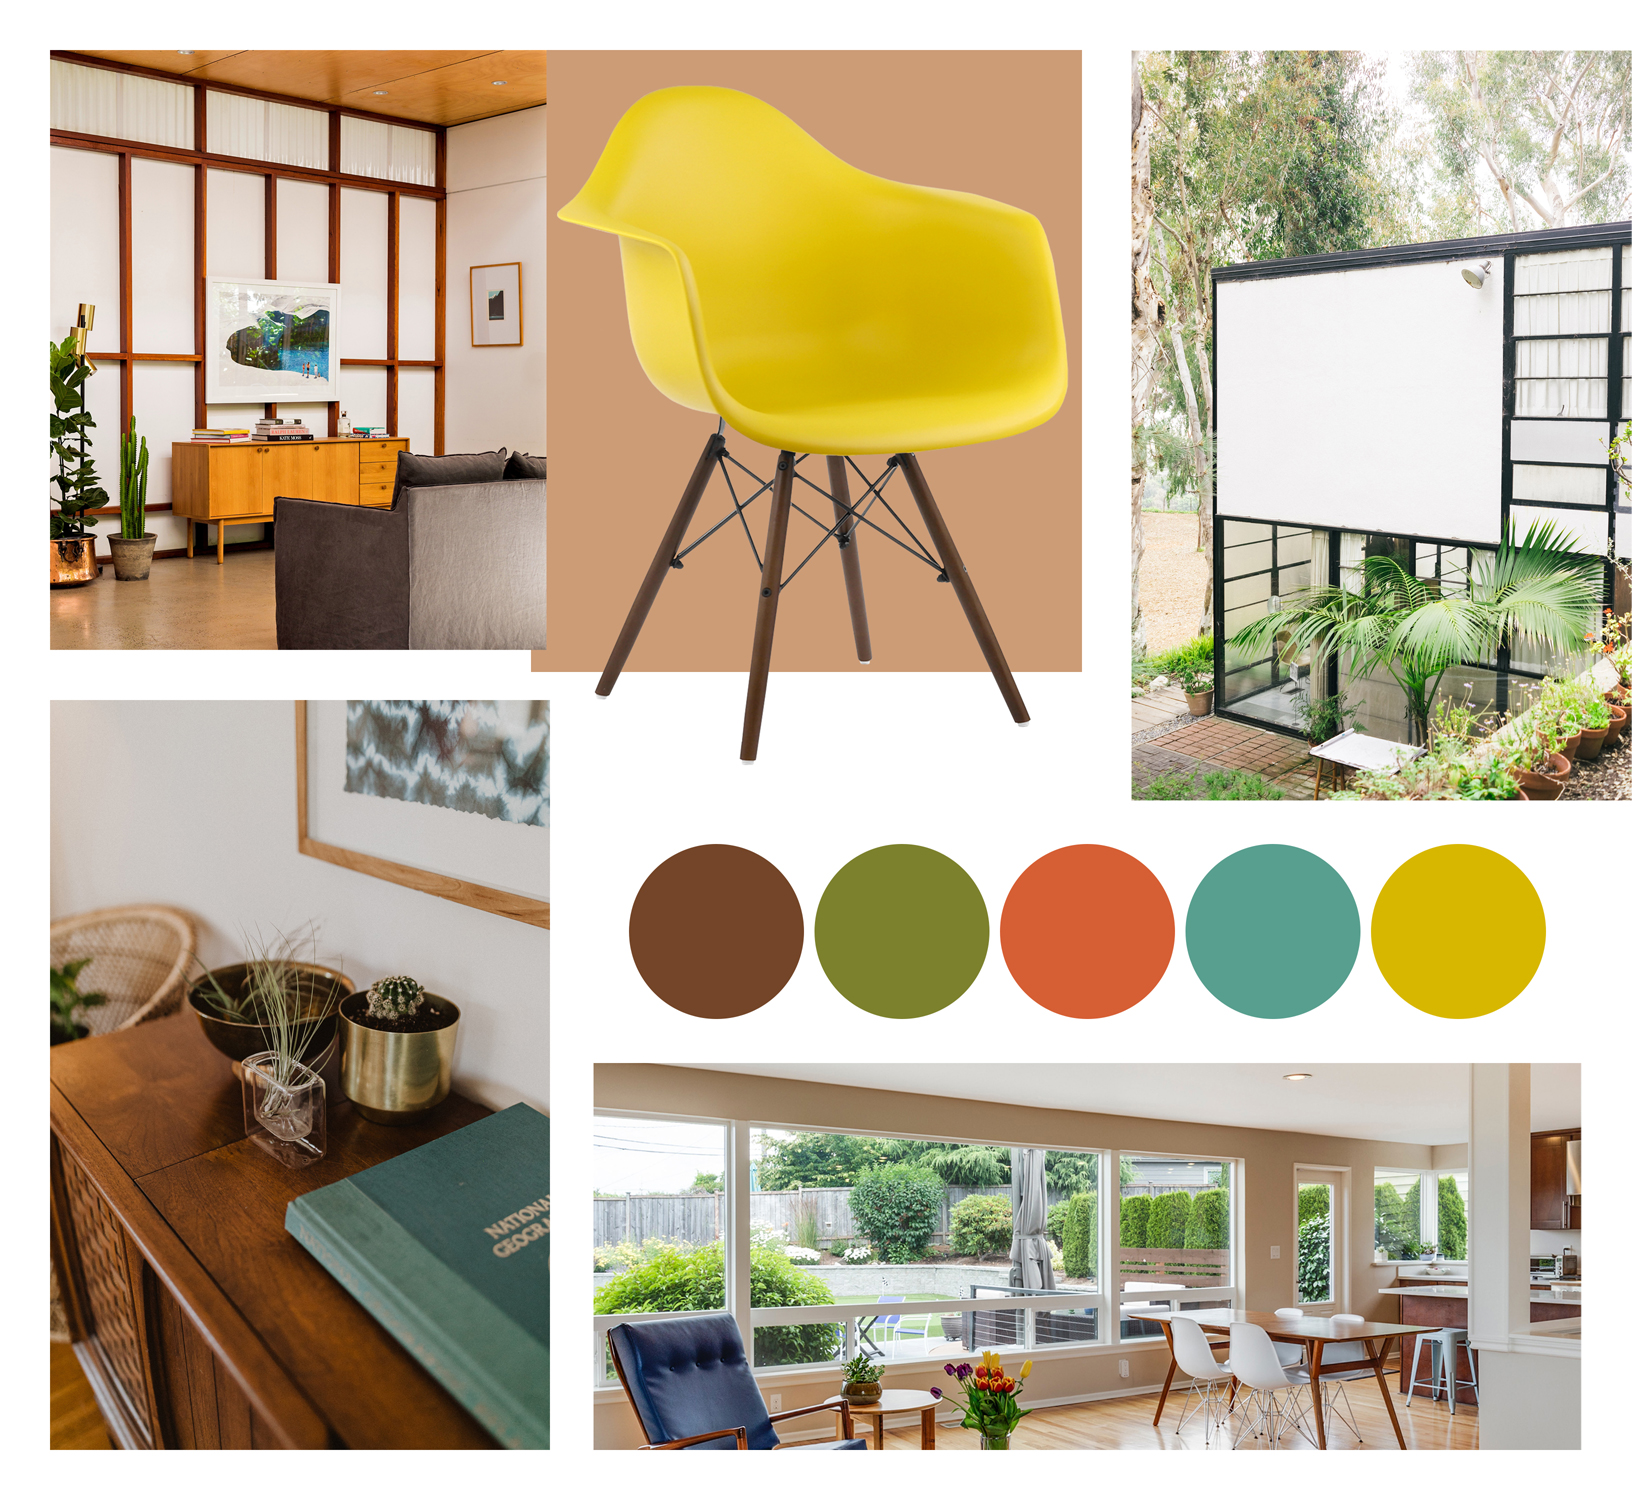 Eames Eiffel Chairs Used In Mid-Century Modern Homes